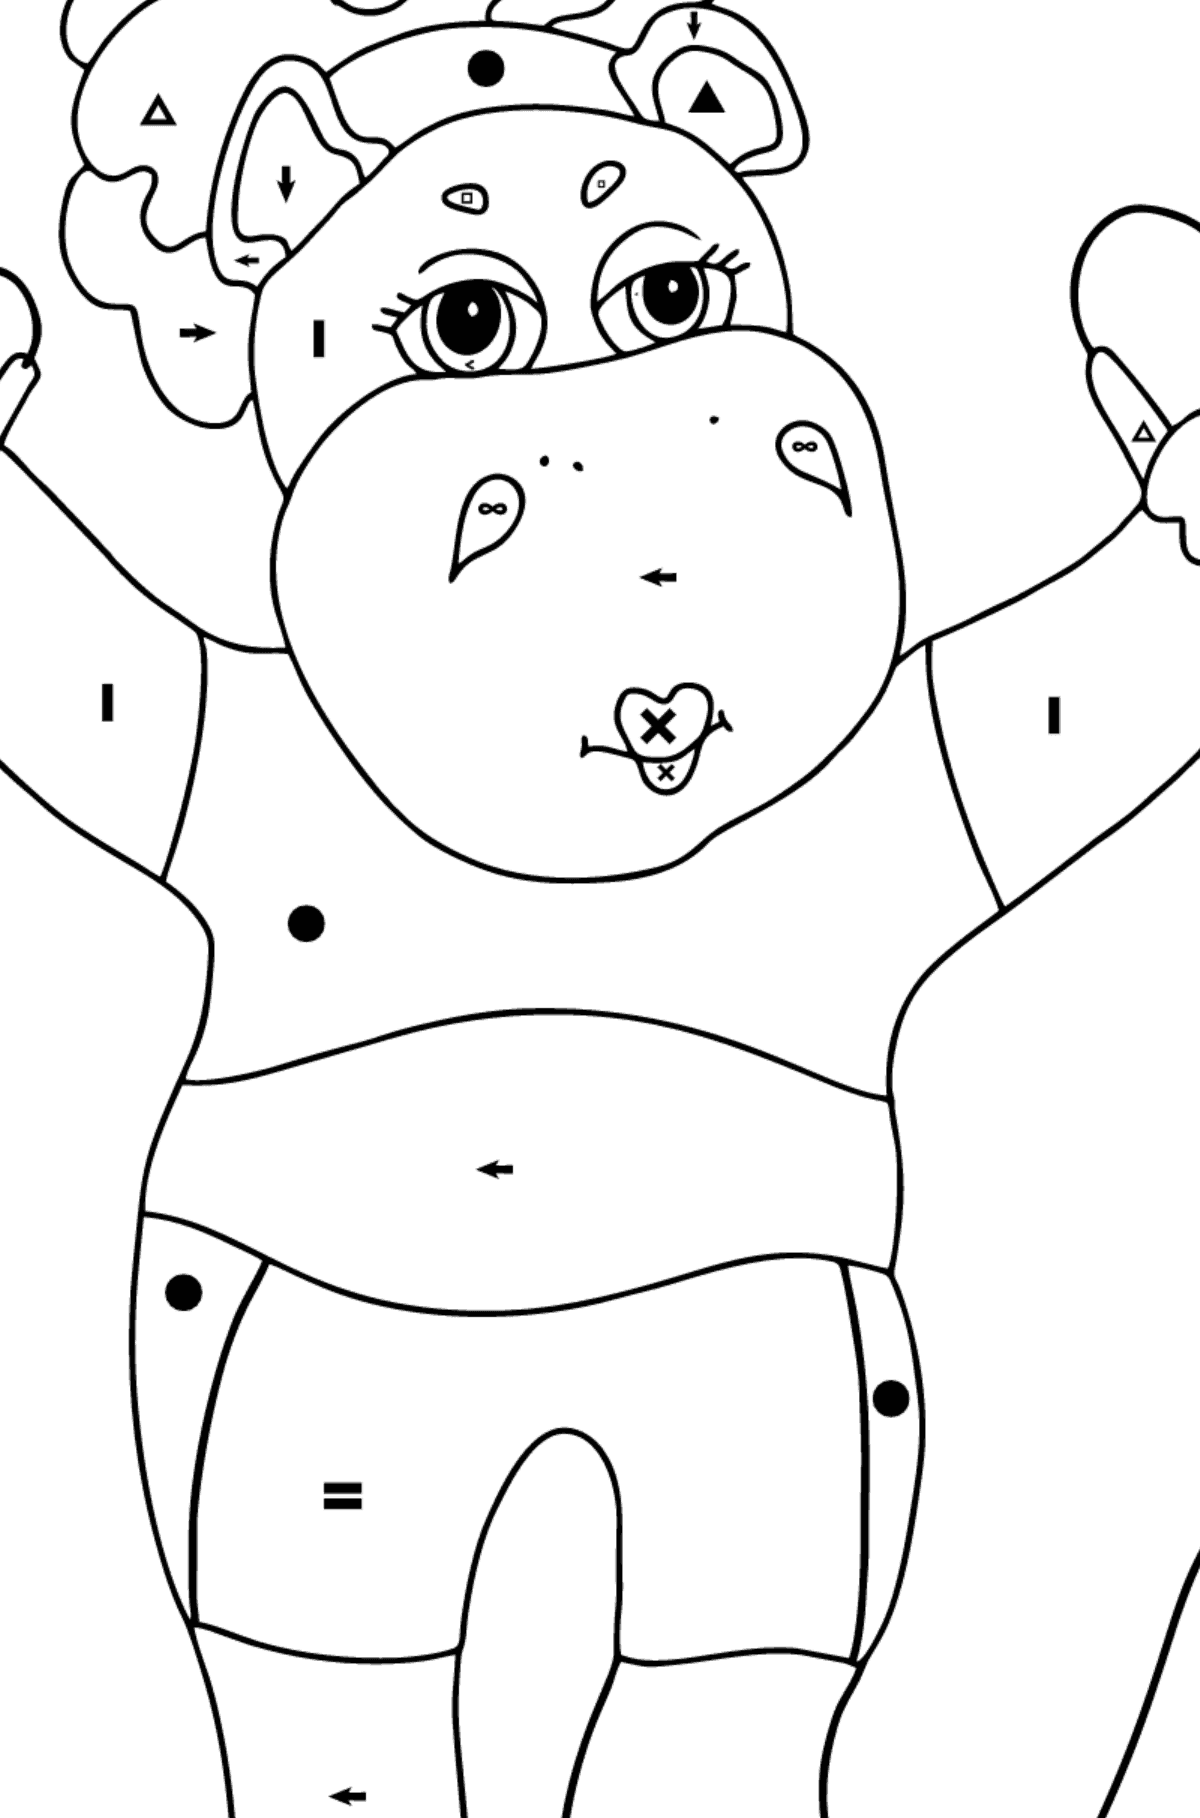 Coloring Page - A Hippo is Jumping on a Rope for Kids  - Color by Special Symbols